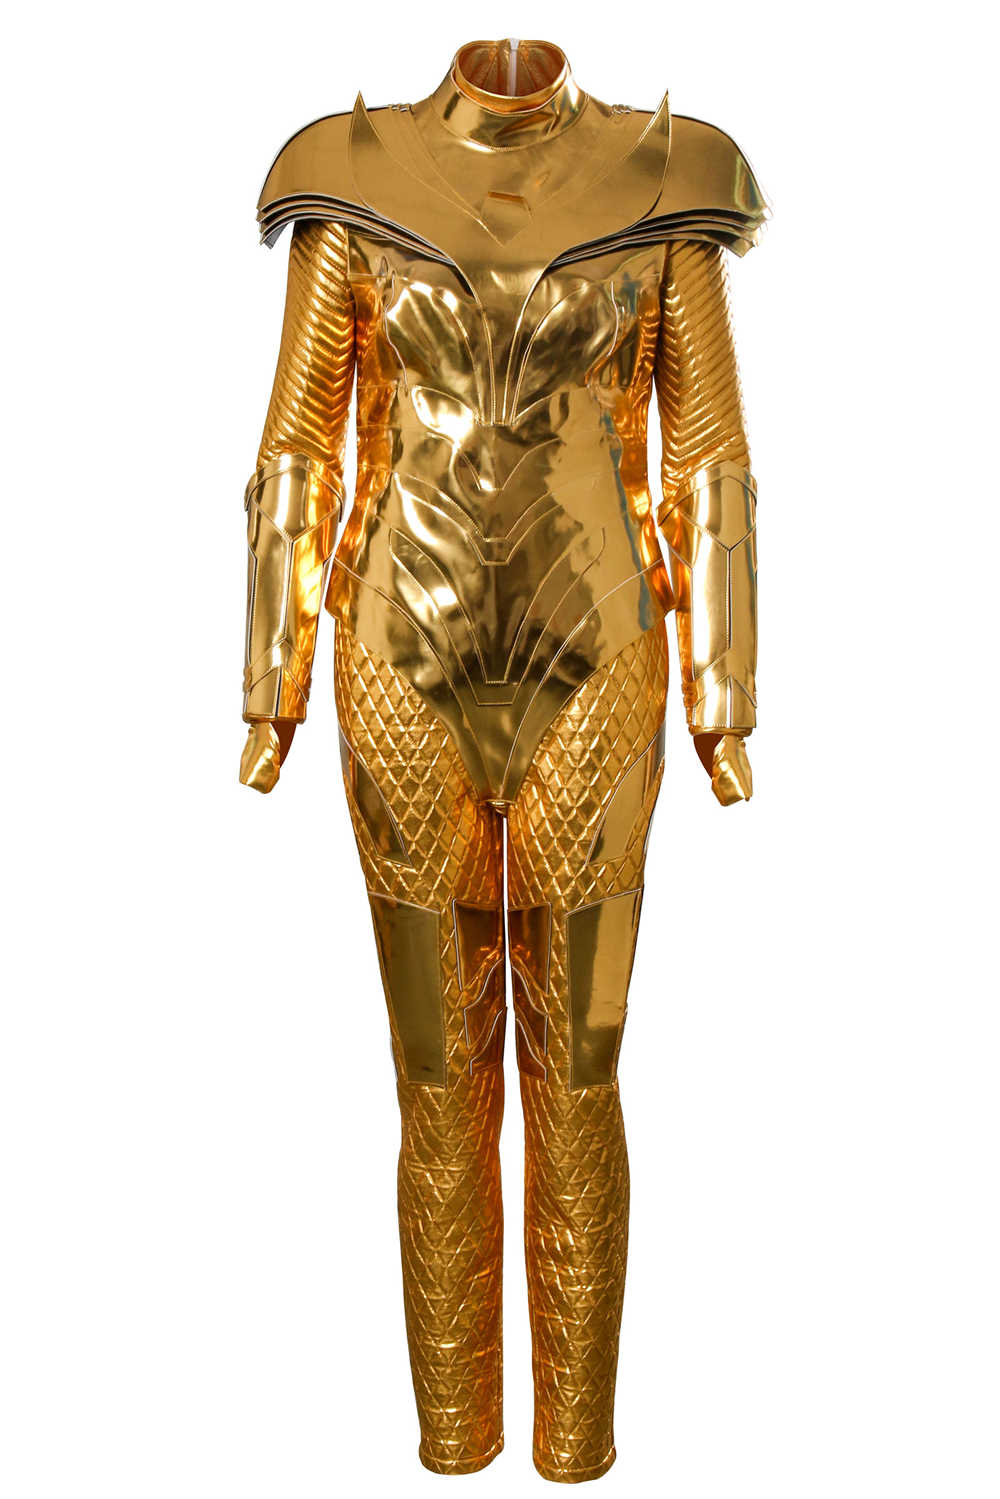 Diana Prince New Golden Eagle Armor Costume DC Wonder Woman 1984 Cosplay Costumes For Women -Takerlama